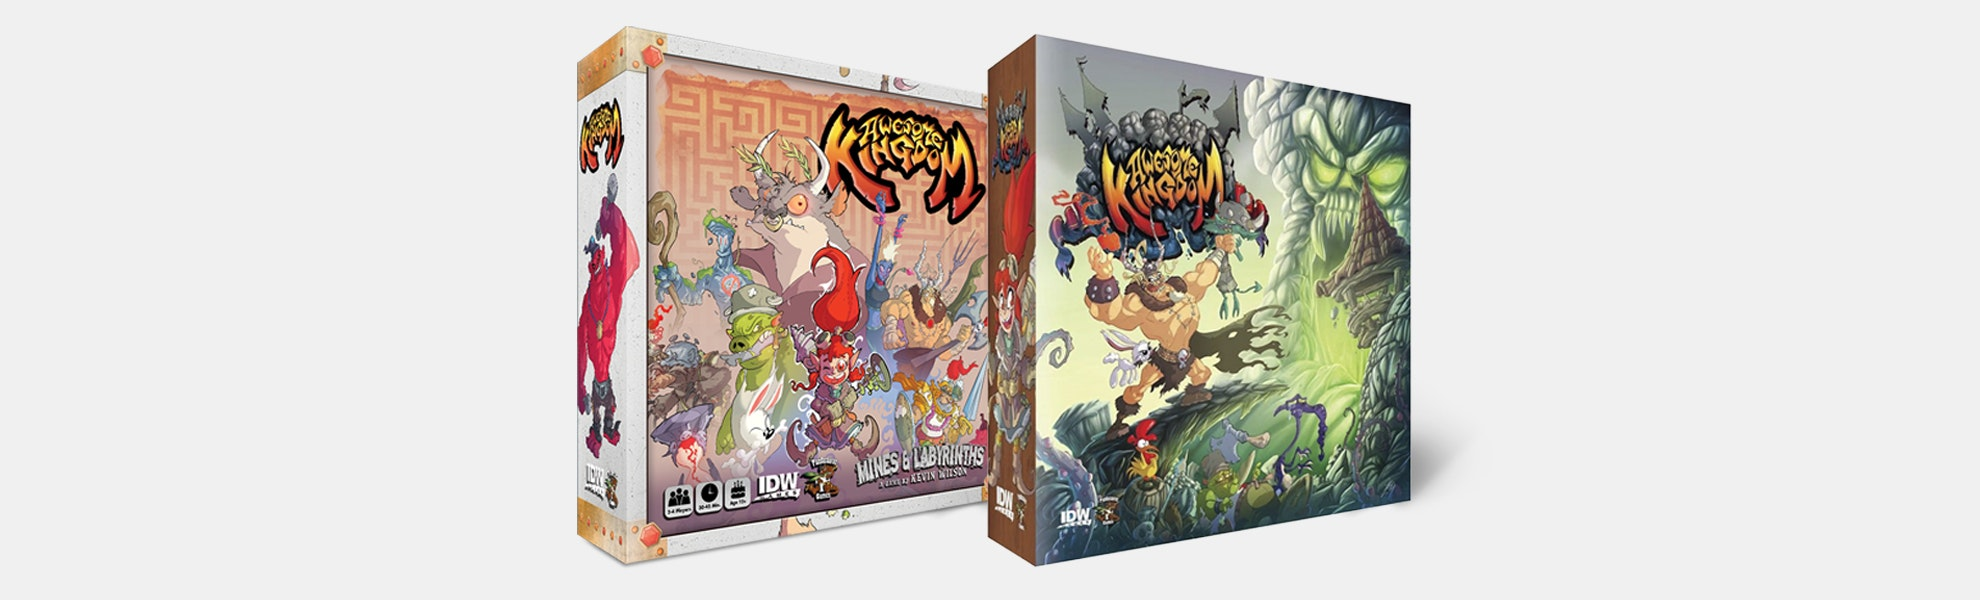 Awesome Kingdom Board Game Bundle